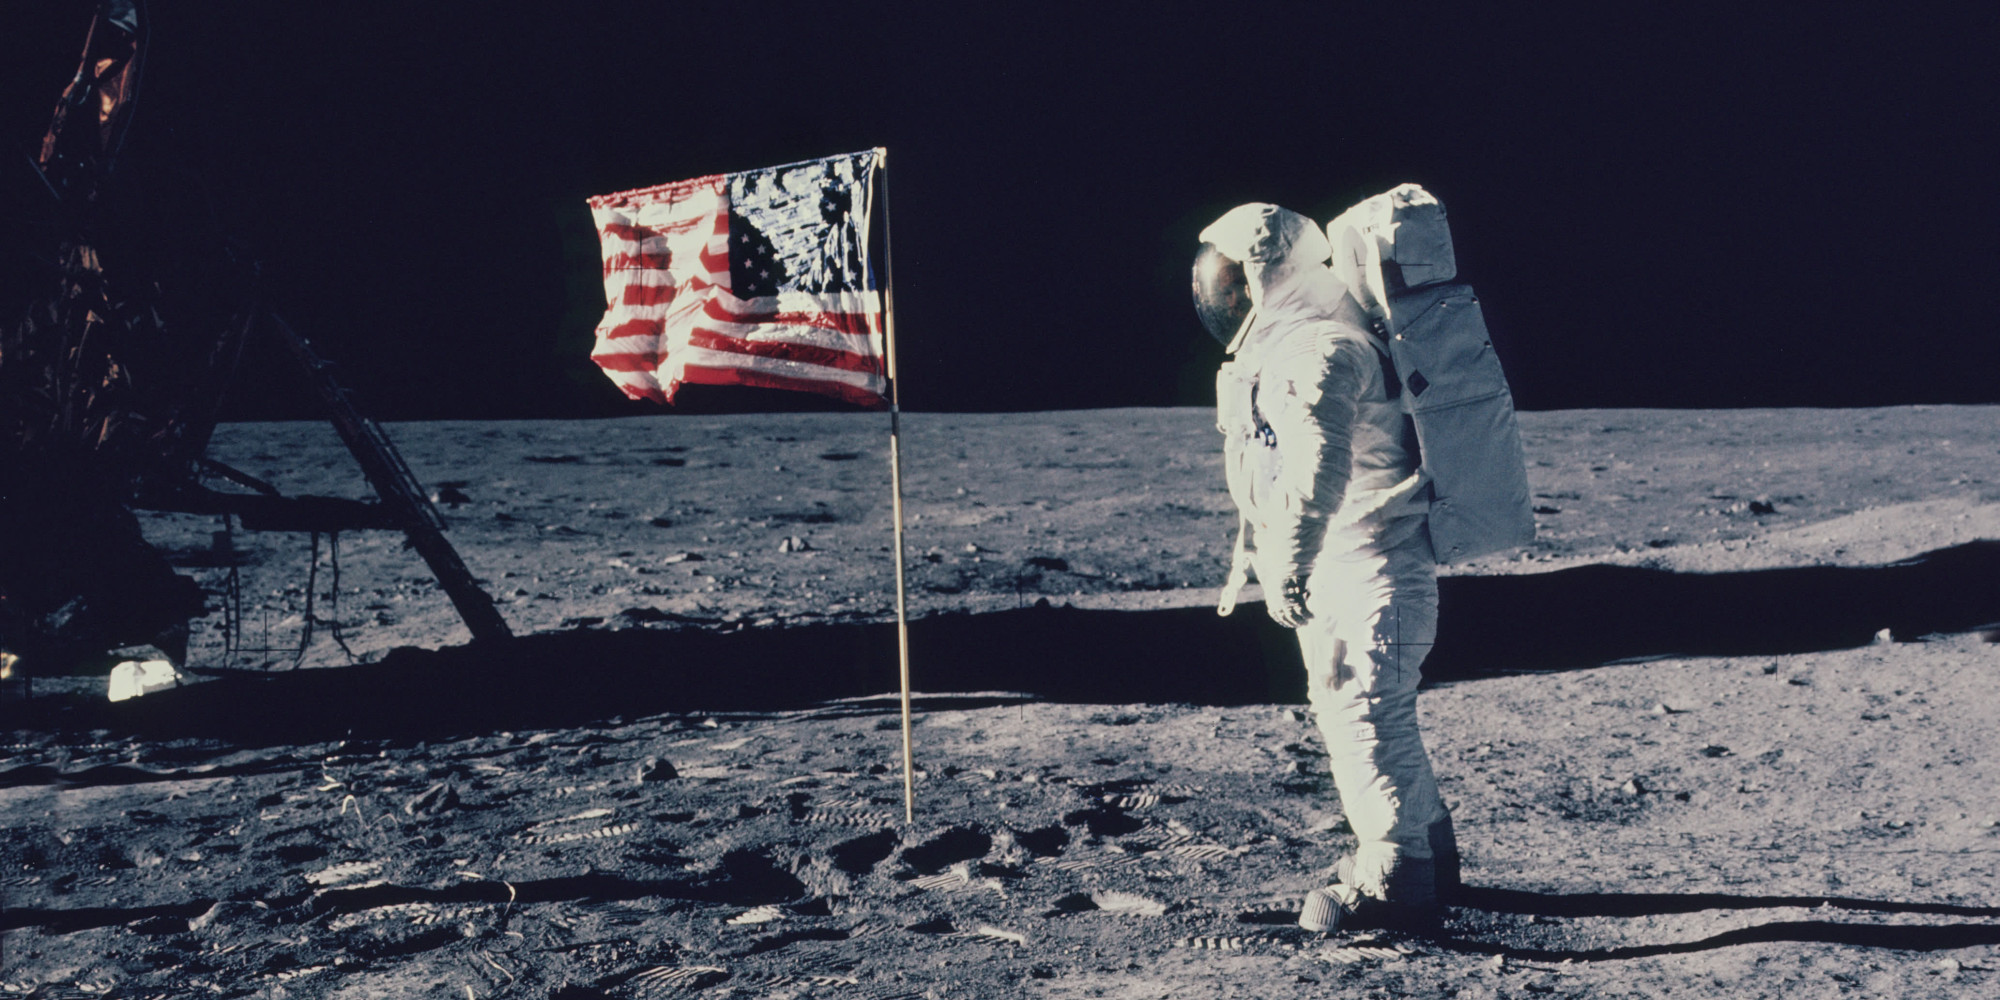 "neil armstrong and the moon landing A new movie starring canadian actor ryan gosling tells of the story of neil armstrong landing on the moon–but omits the american flag the telegraph reports that the flag is not shown in the new movie first man, with star ryan gosling saying that the american moon landing ""transcended countries."